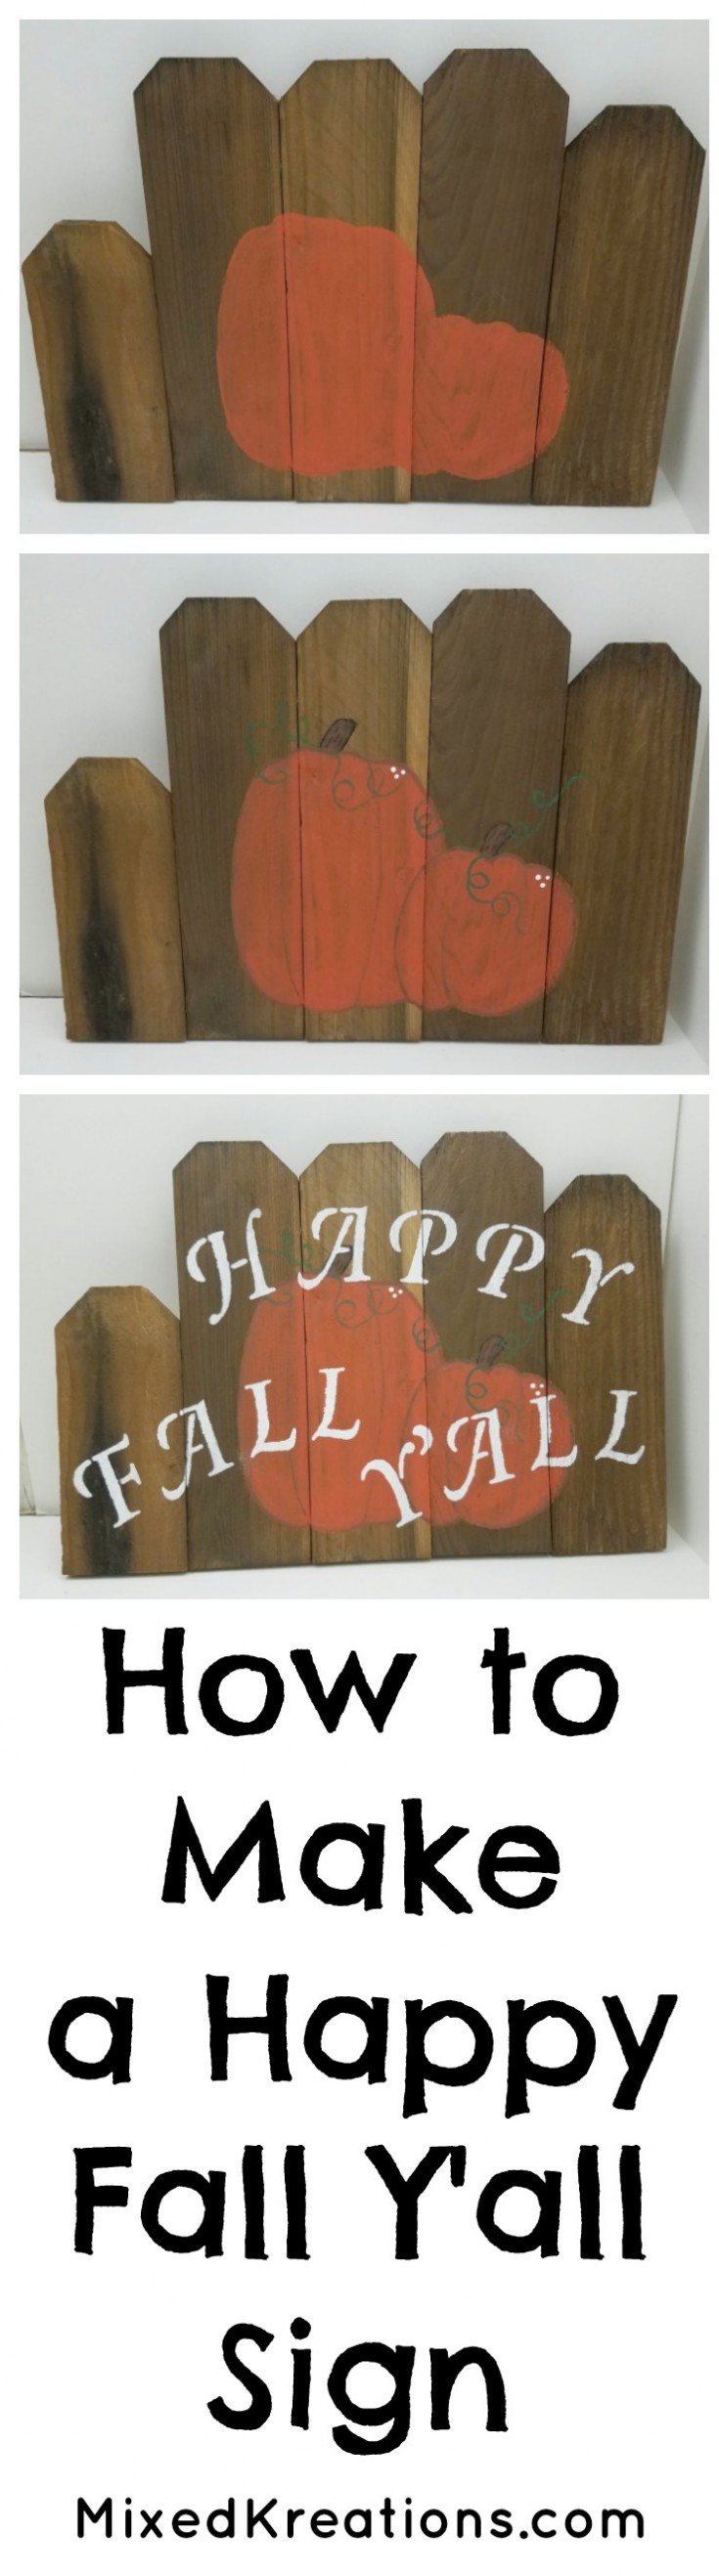 how to make a easy happy fall yall sign from scrap wood pickets